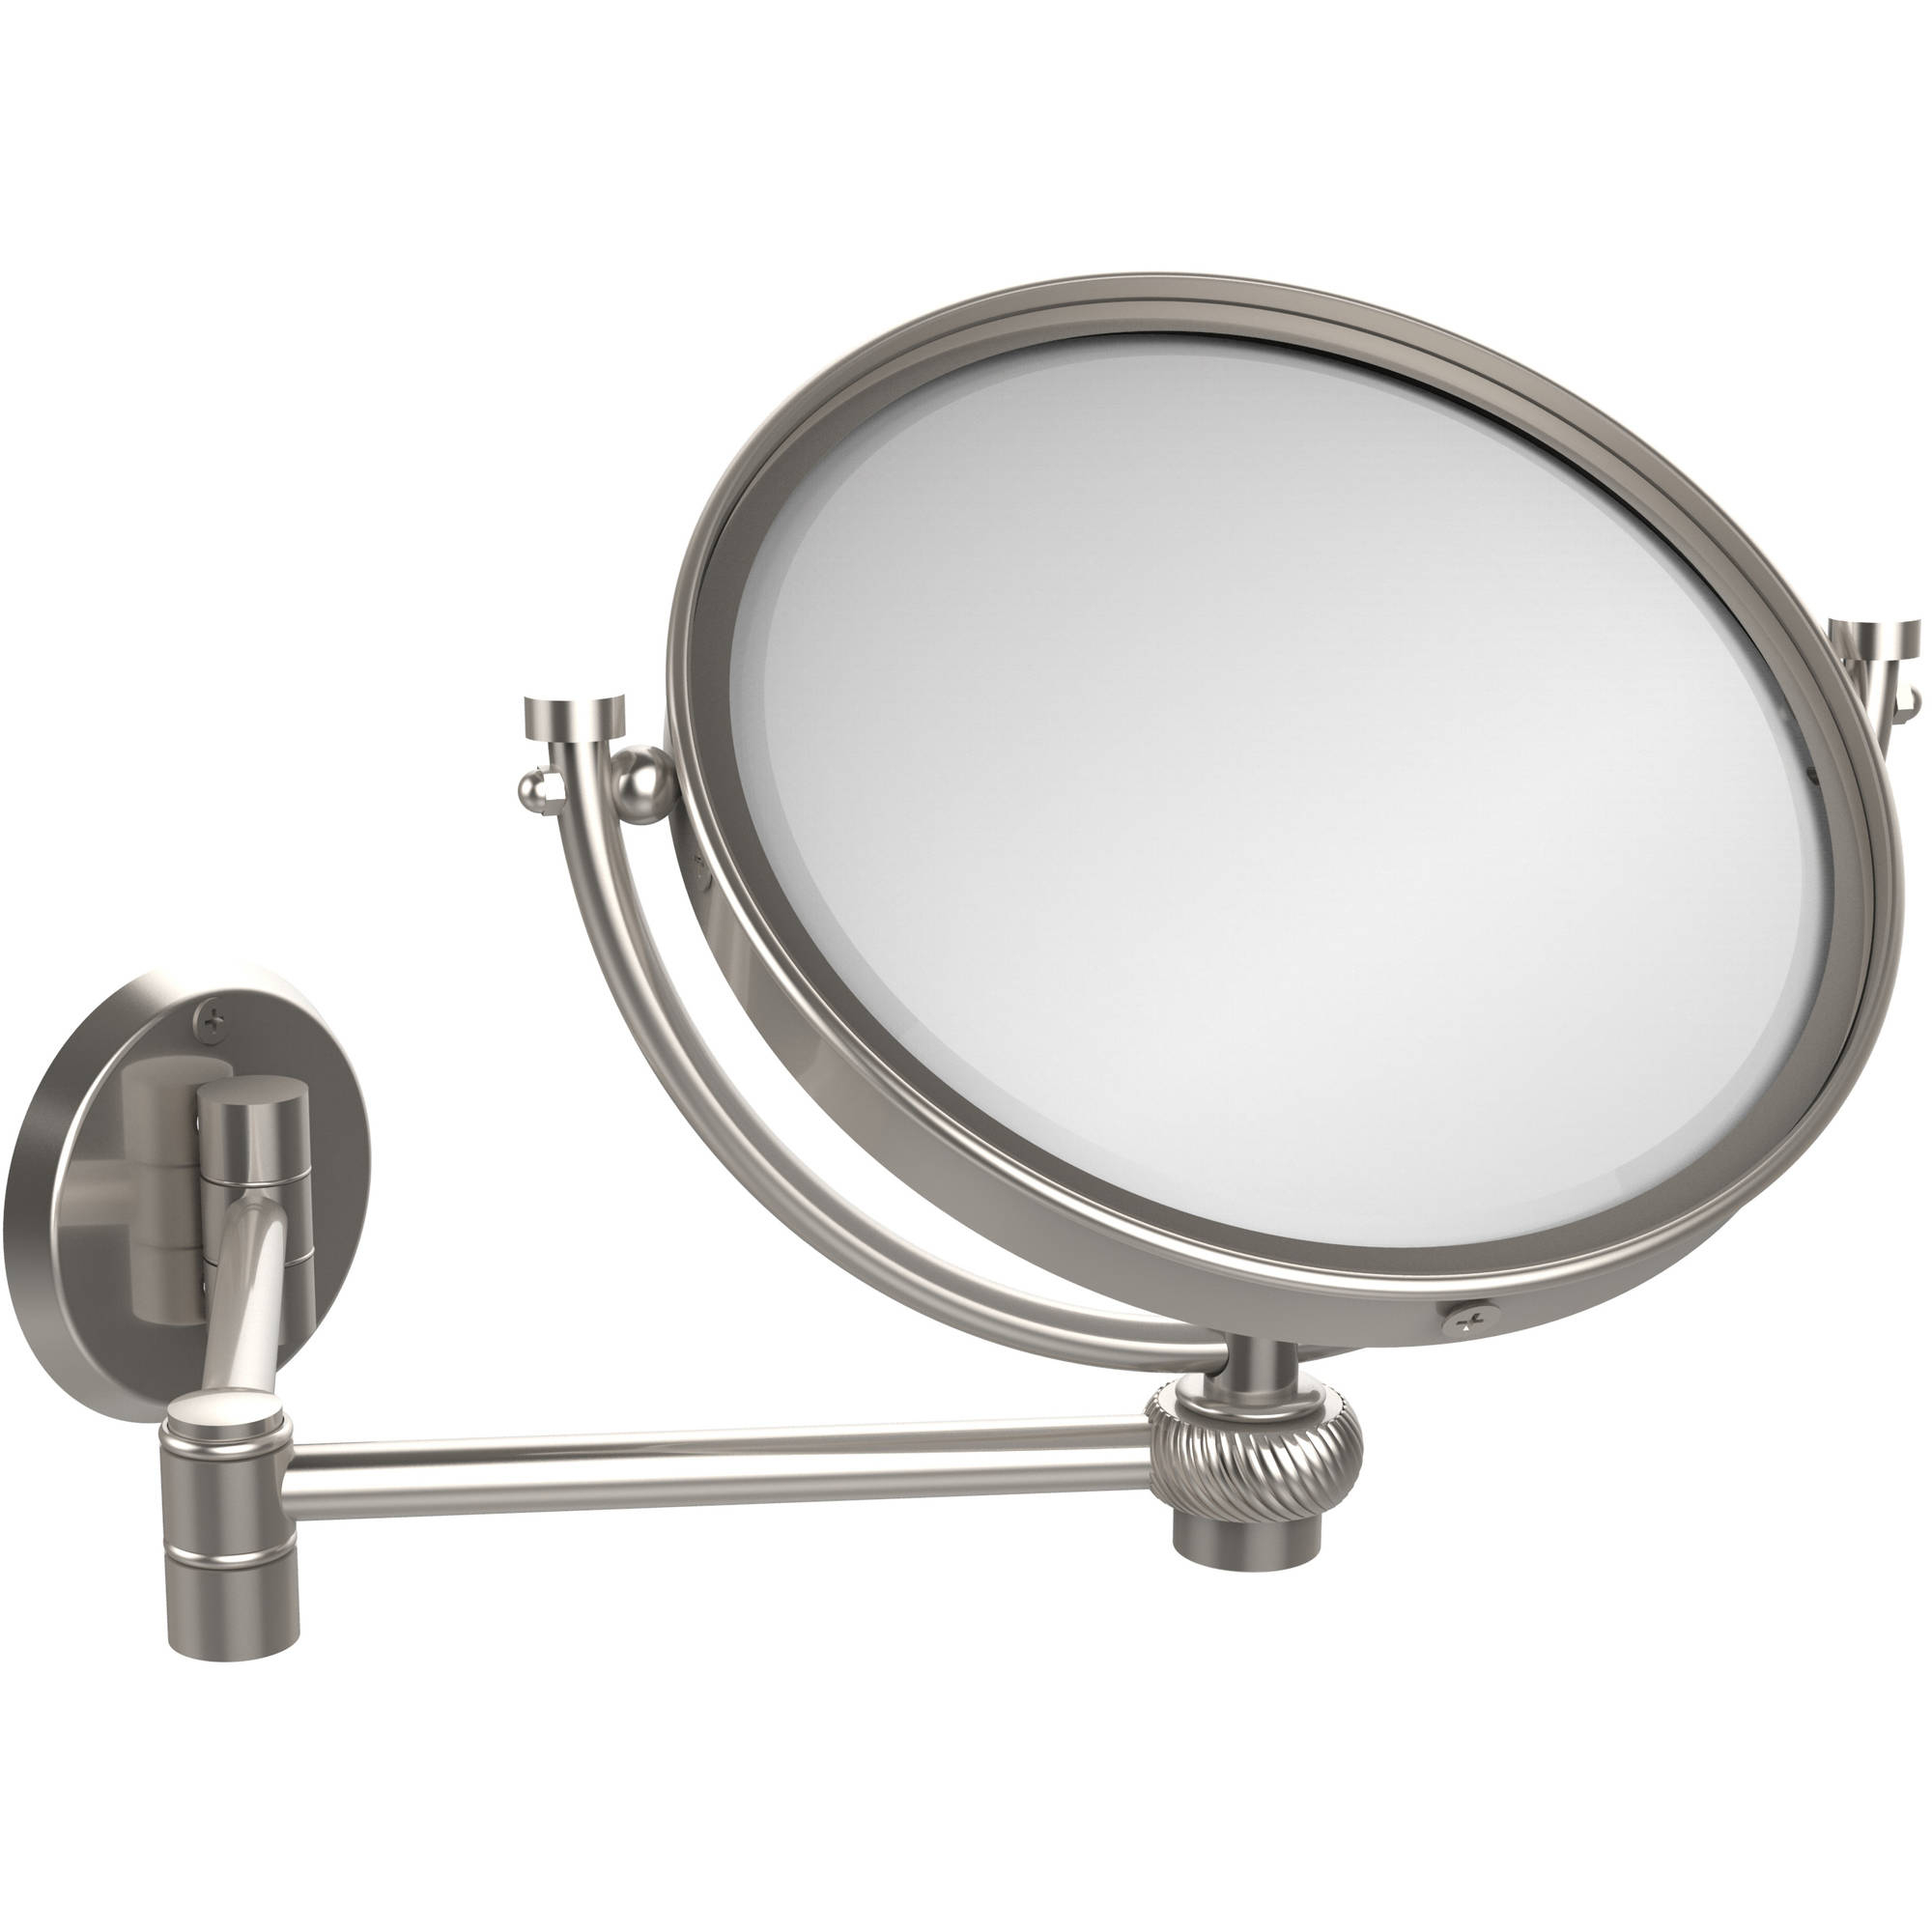 "Extending Wall Mirrors For Fashionable 8"" Wall Mounted Extending Make Up Mirror, 4X Magnification With Twist  Accent (Build To Order) (Gallery 17 of 20)"